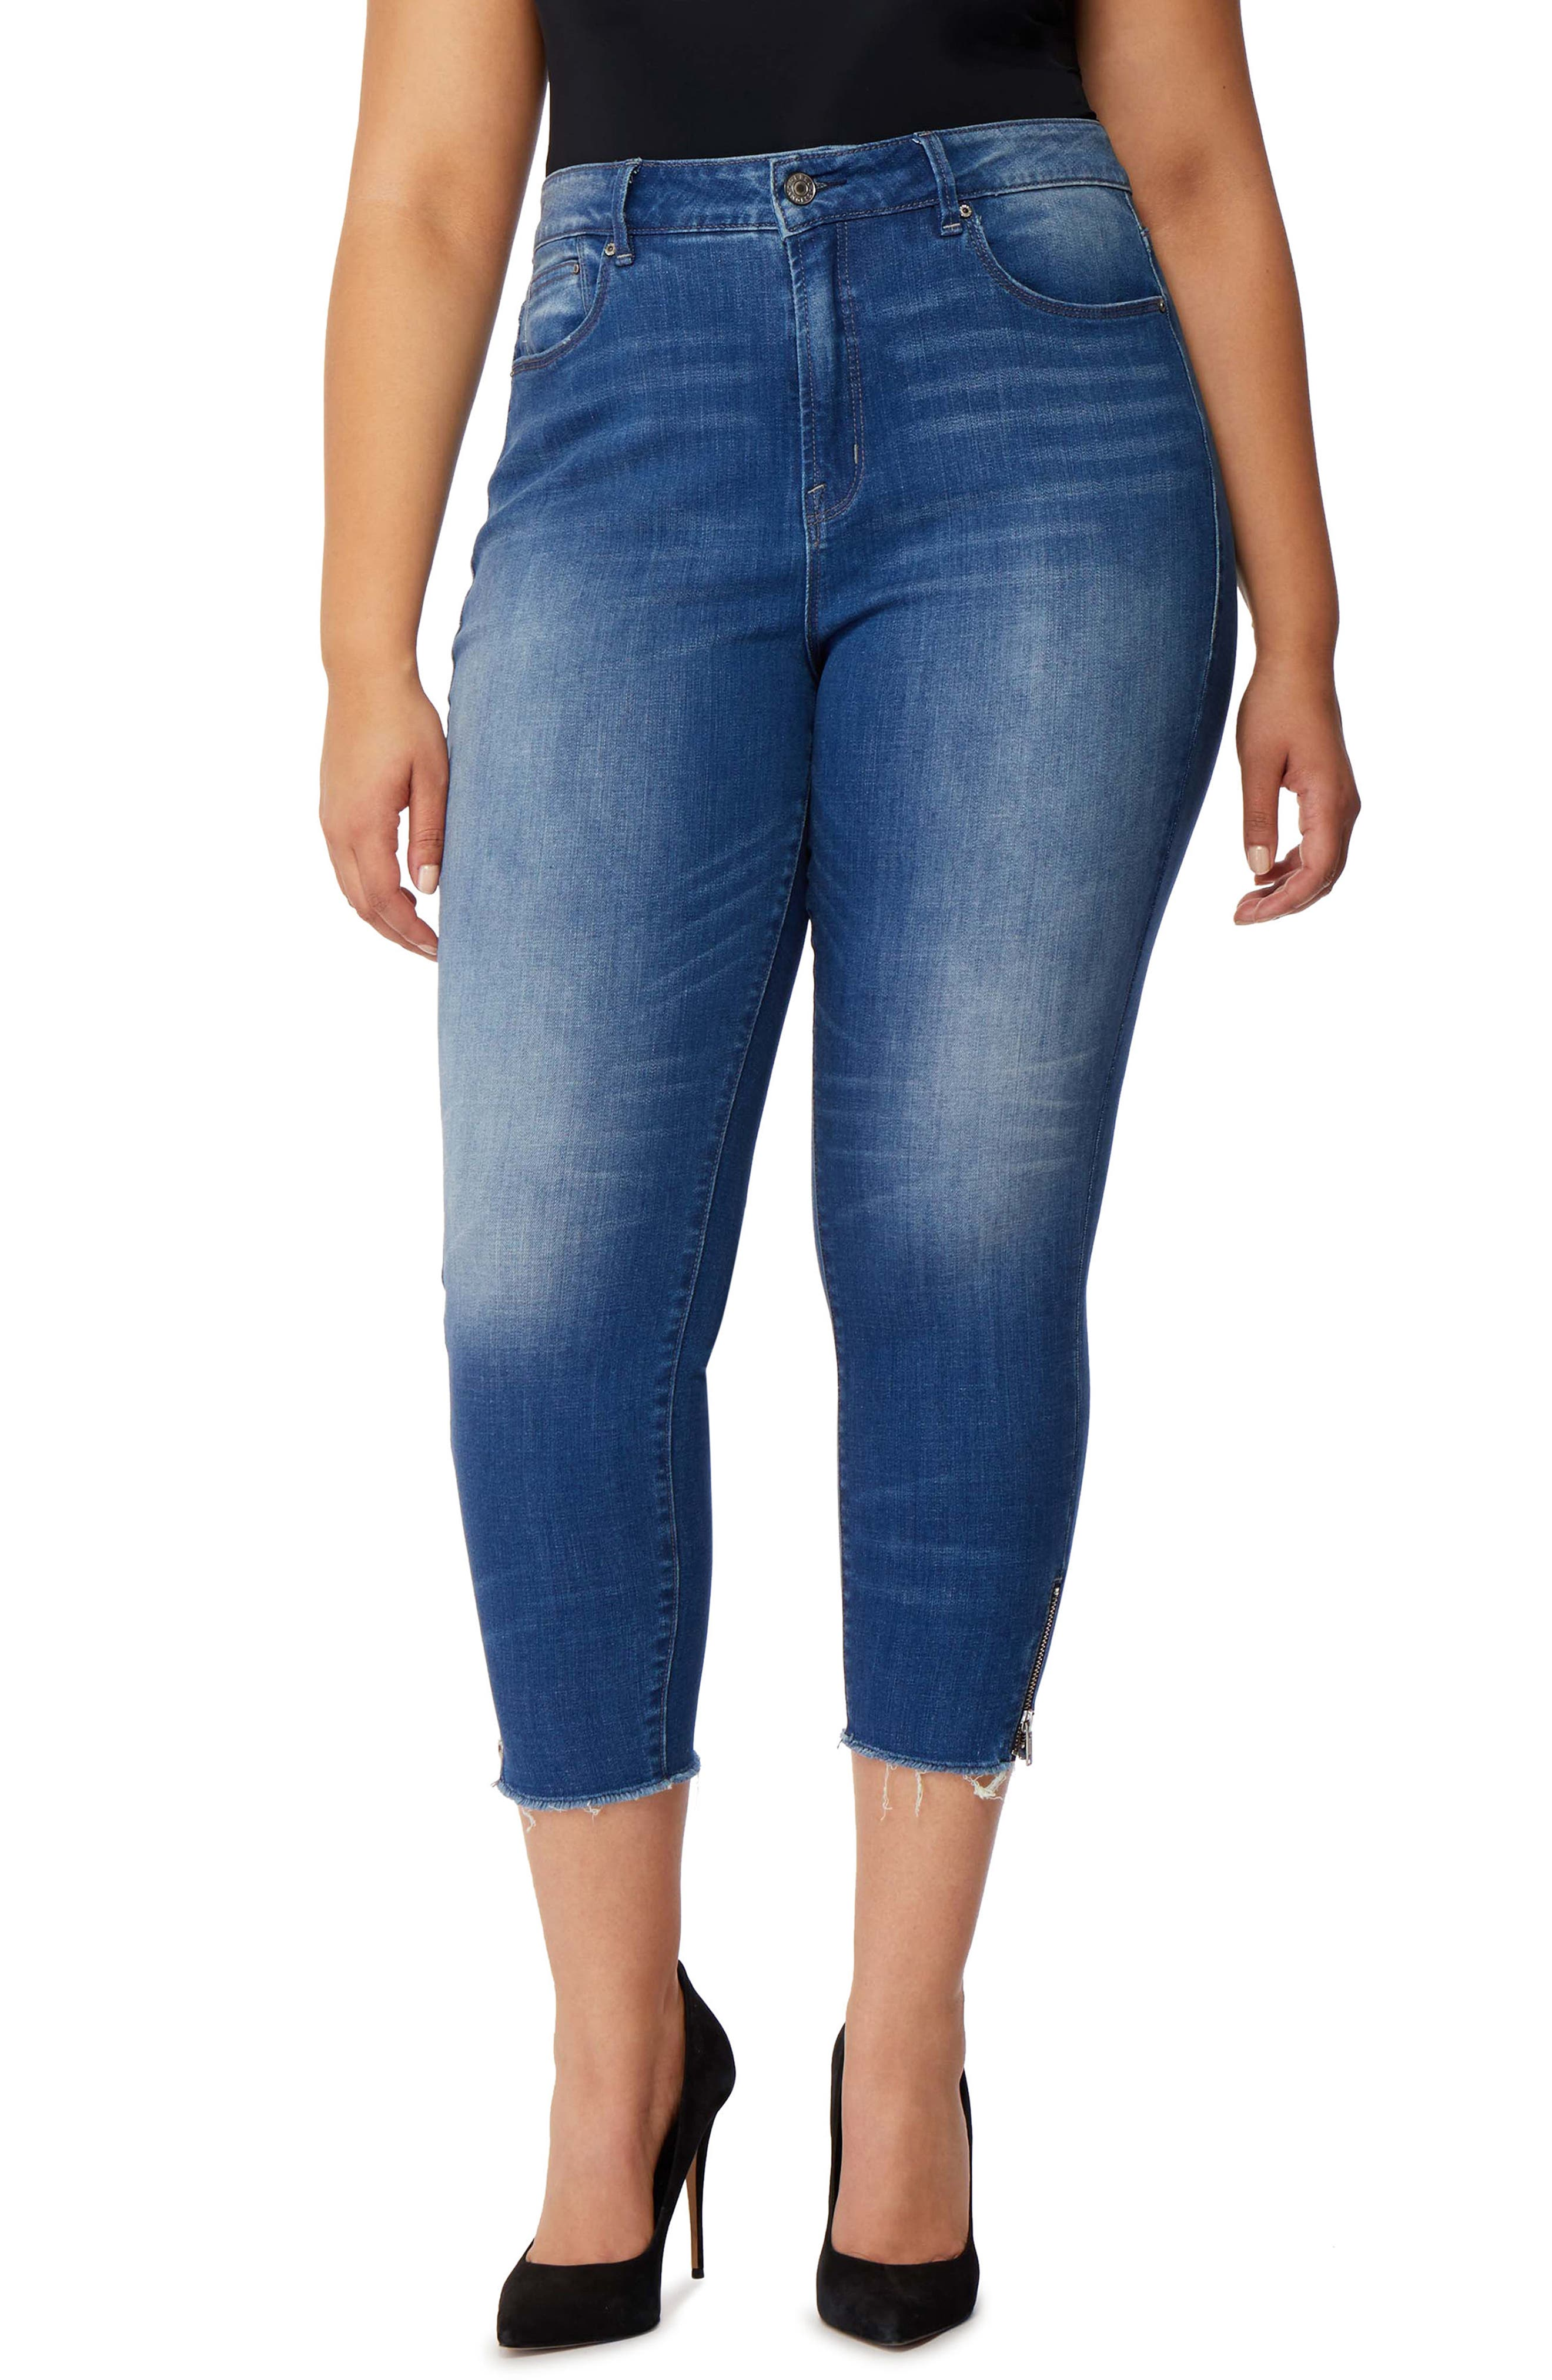 Icon Crop High Waist Skinny Jeans,                             Main thumbnail 1, color,                             453